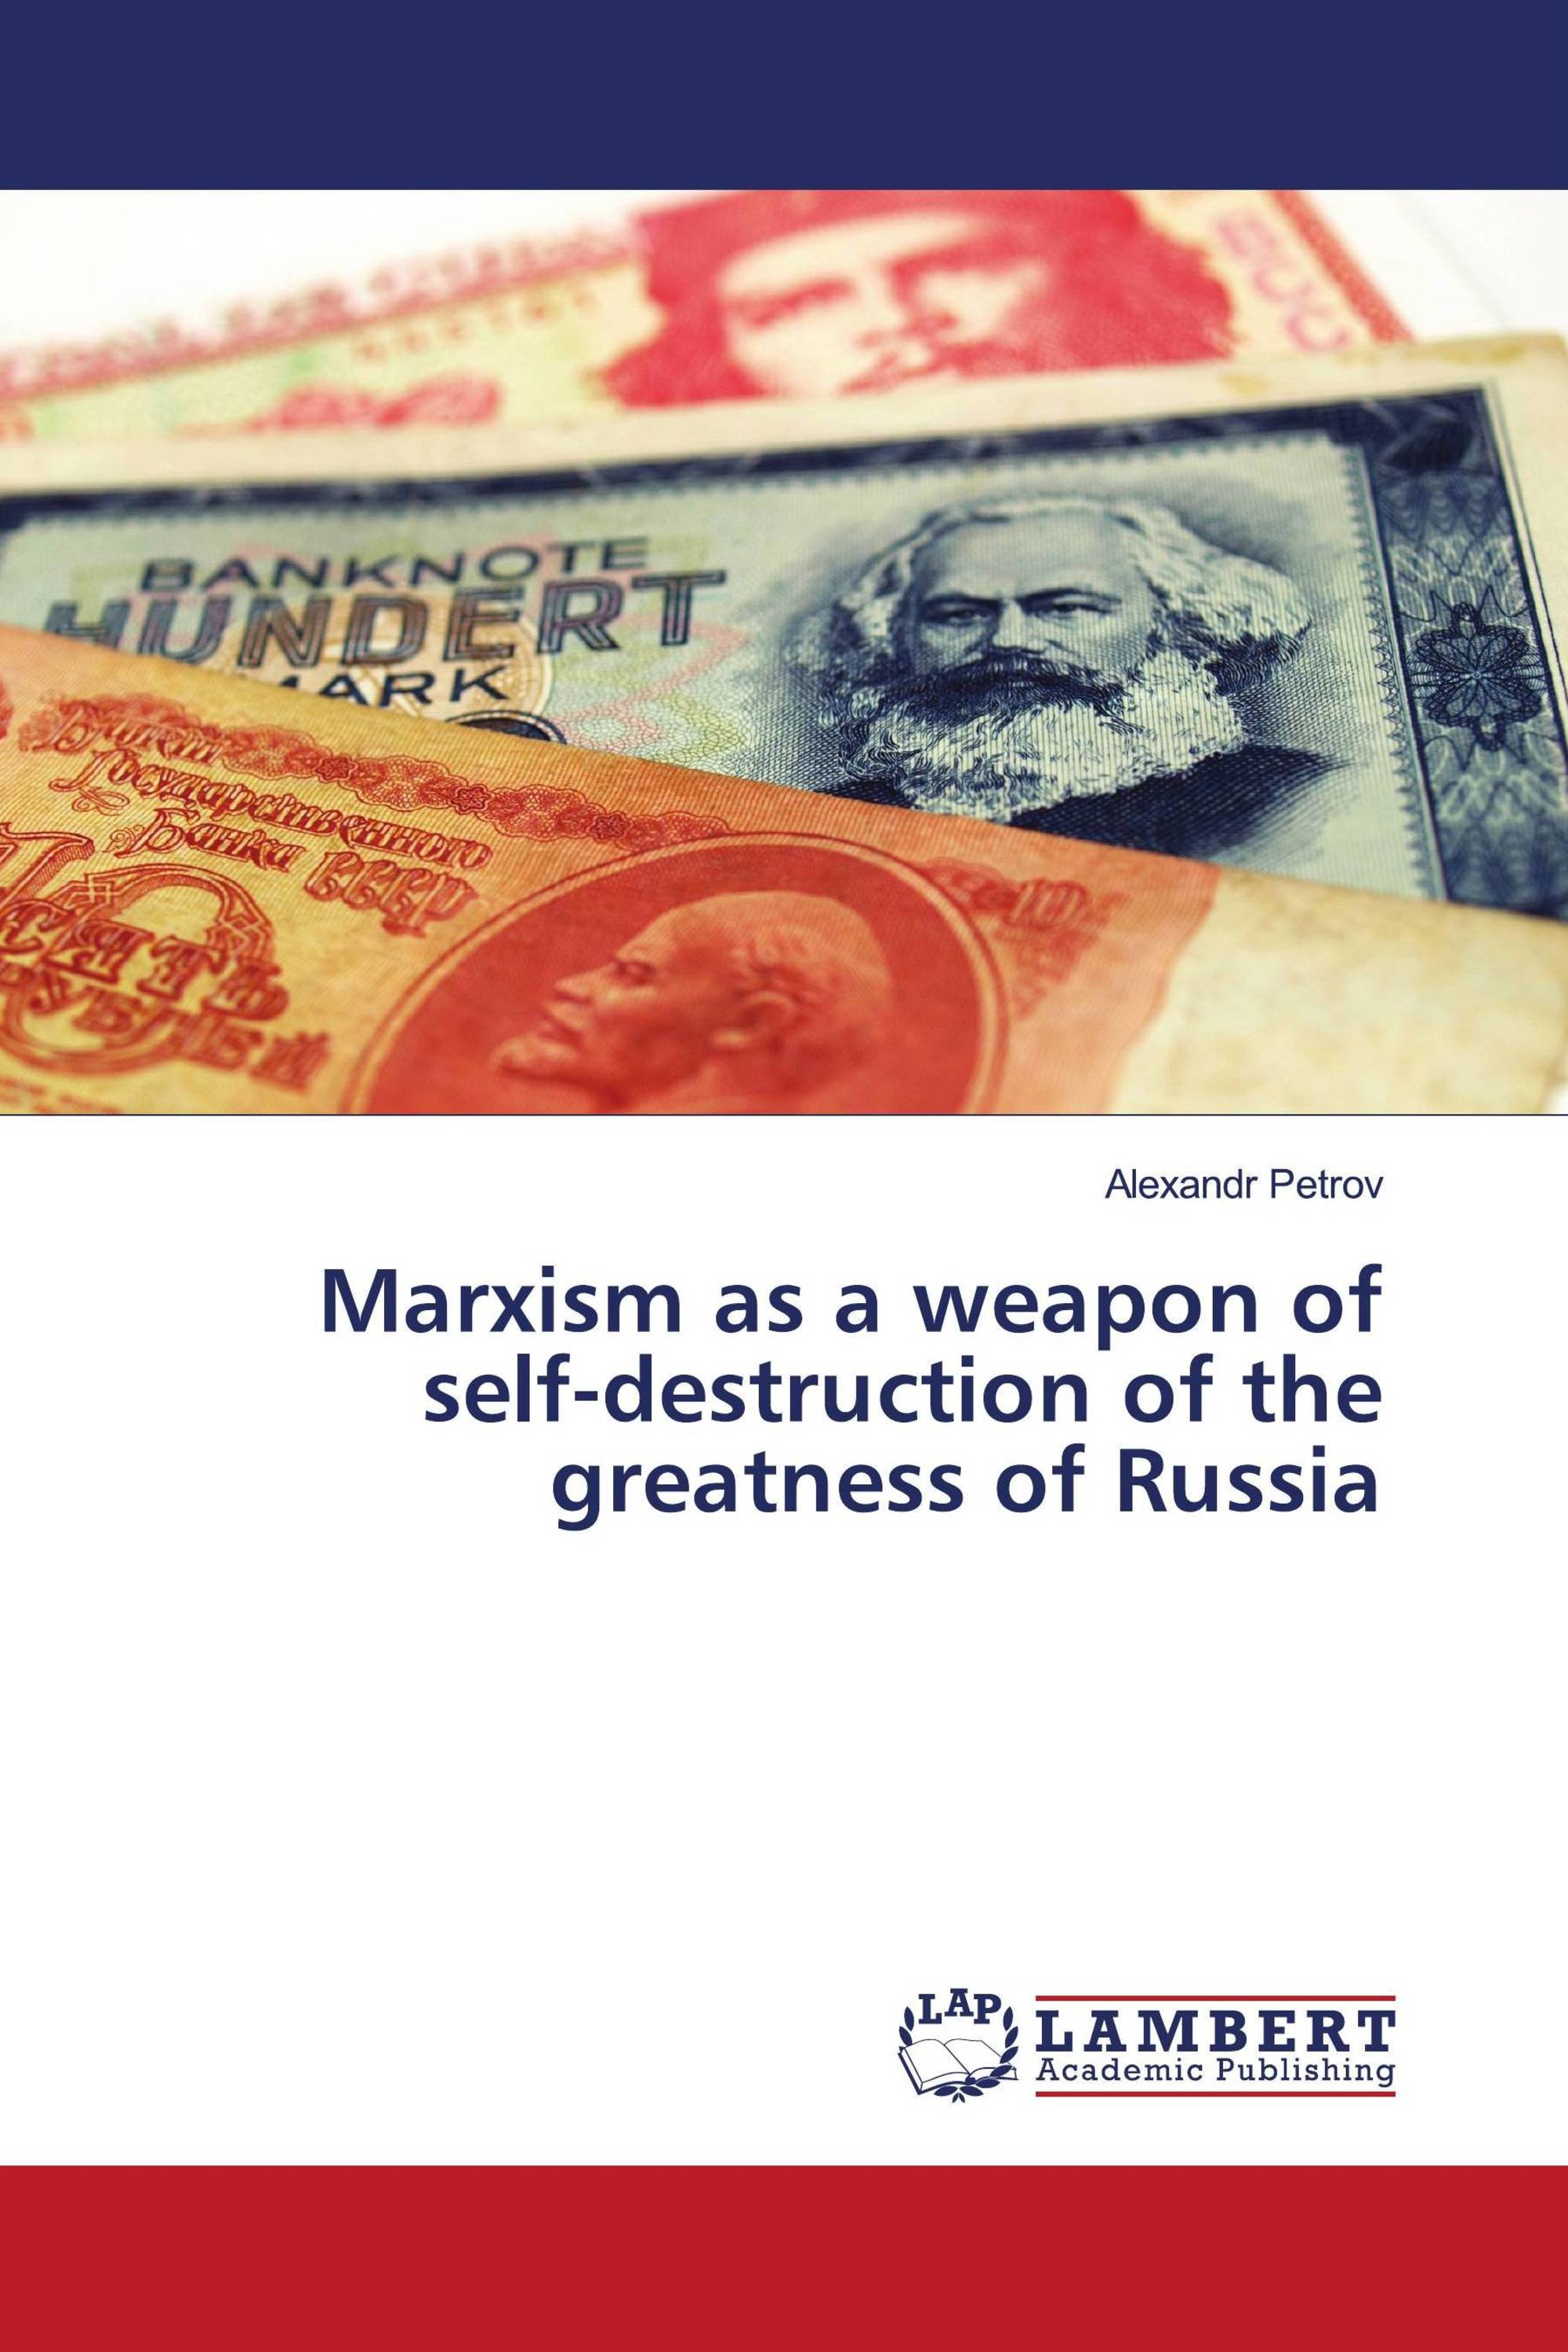 Marxism as a weapon of self-destruction of the greatness of Russia